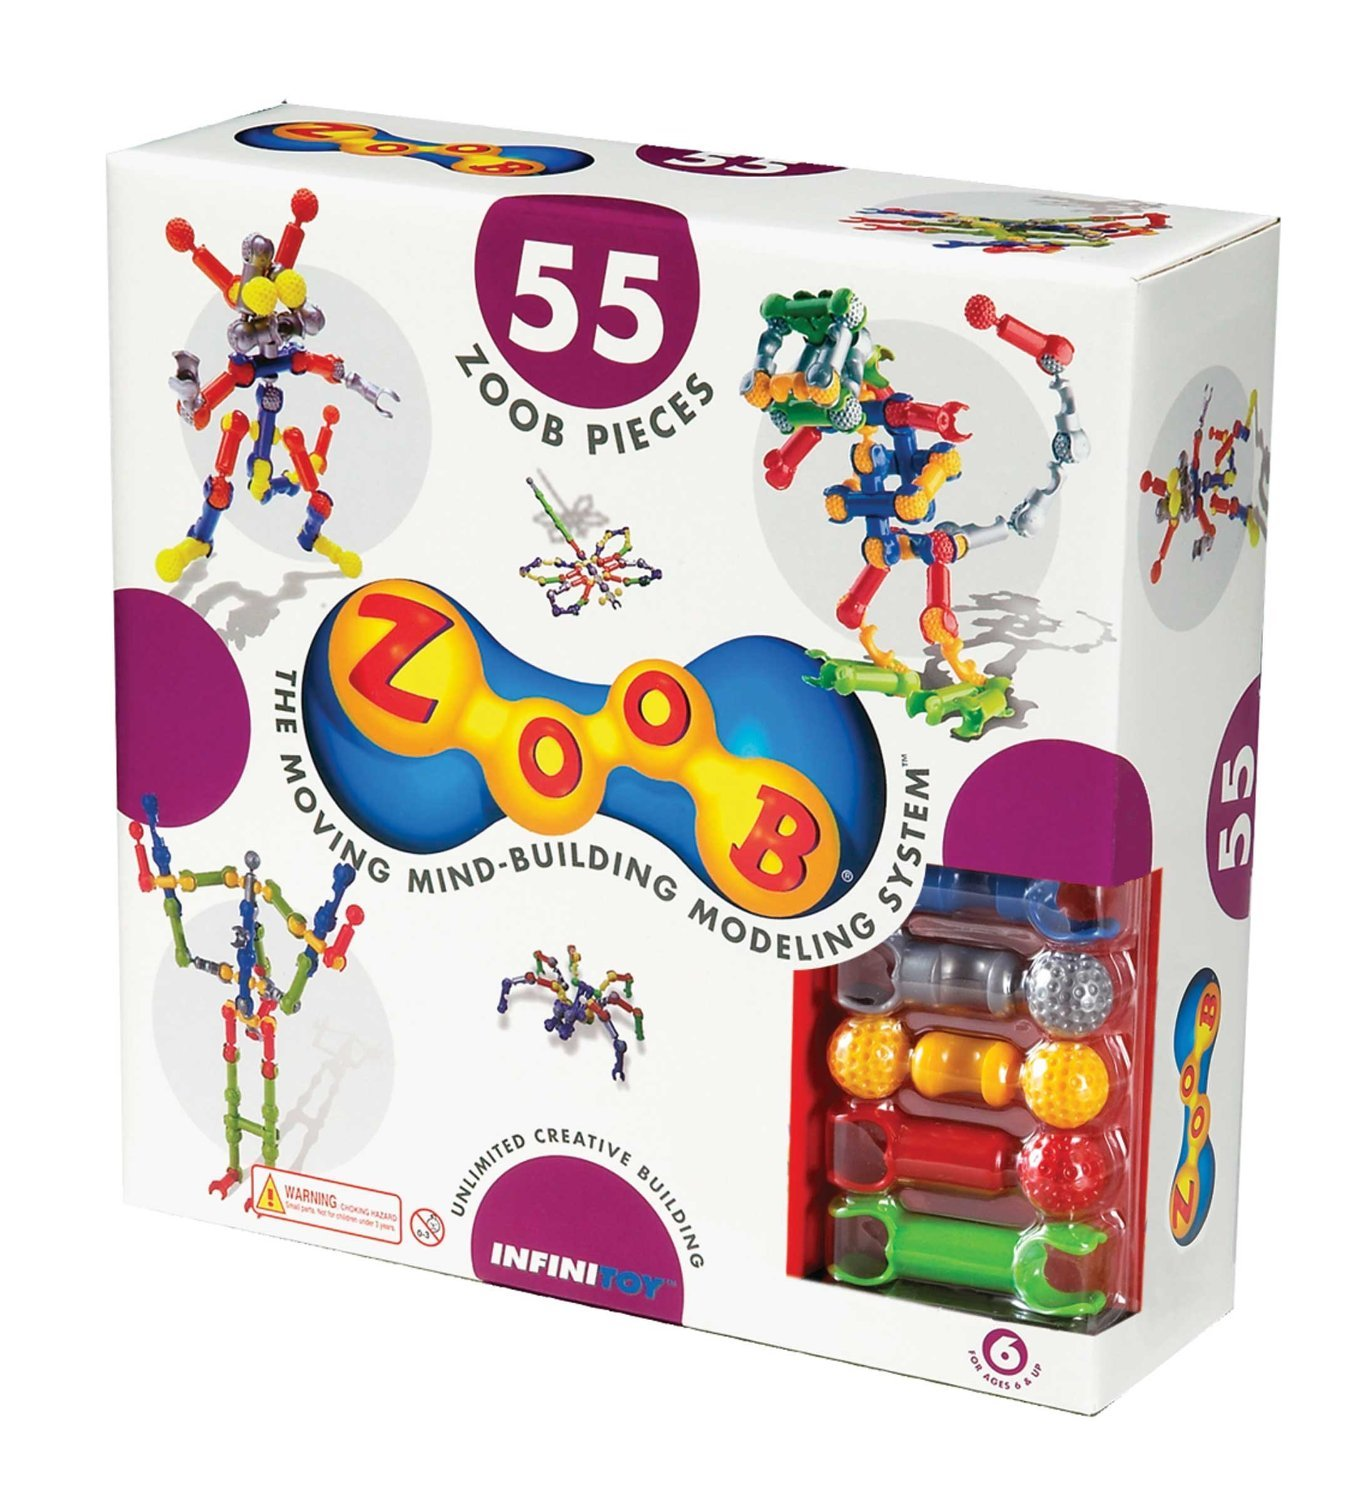 ZOOB 55-Piece Moving Mind-Building Modeling System Building Set by Infinitoy